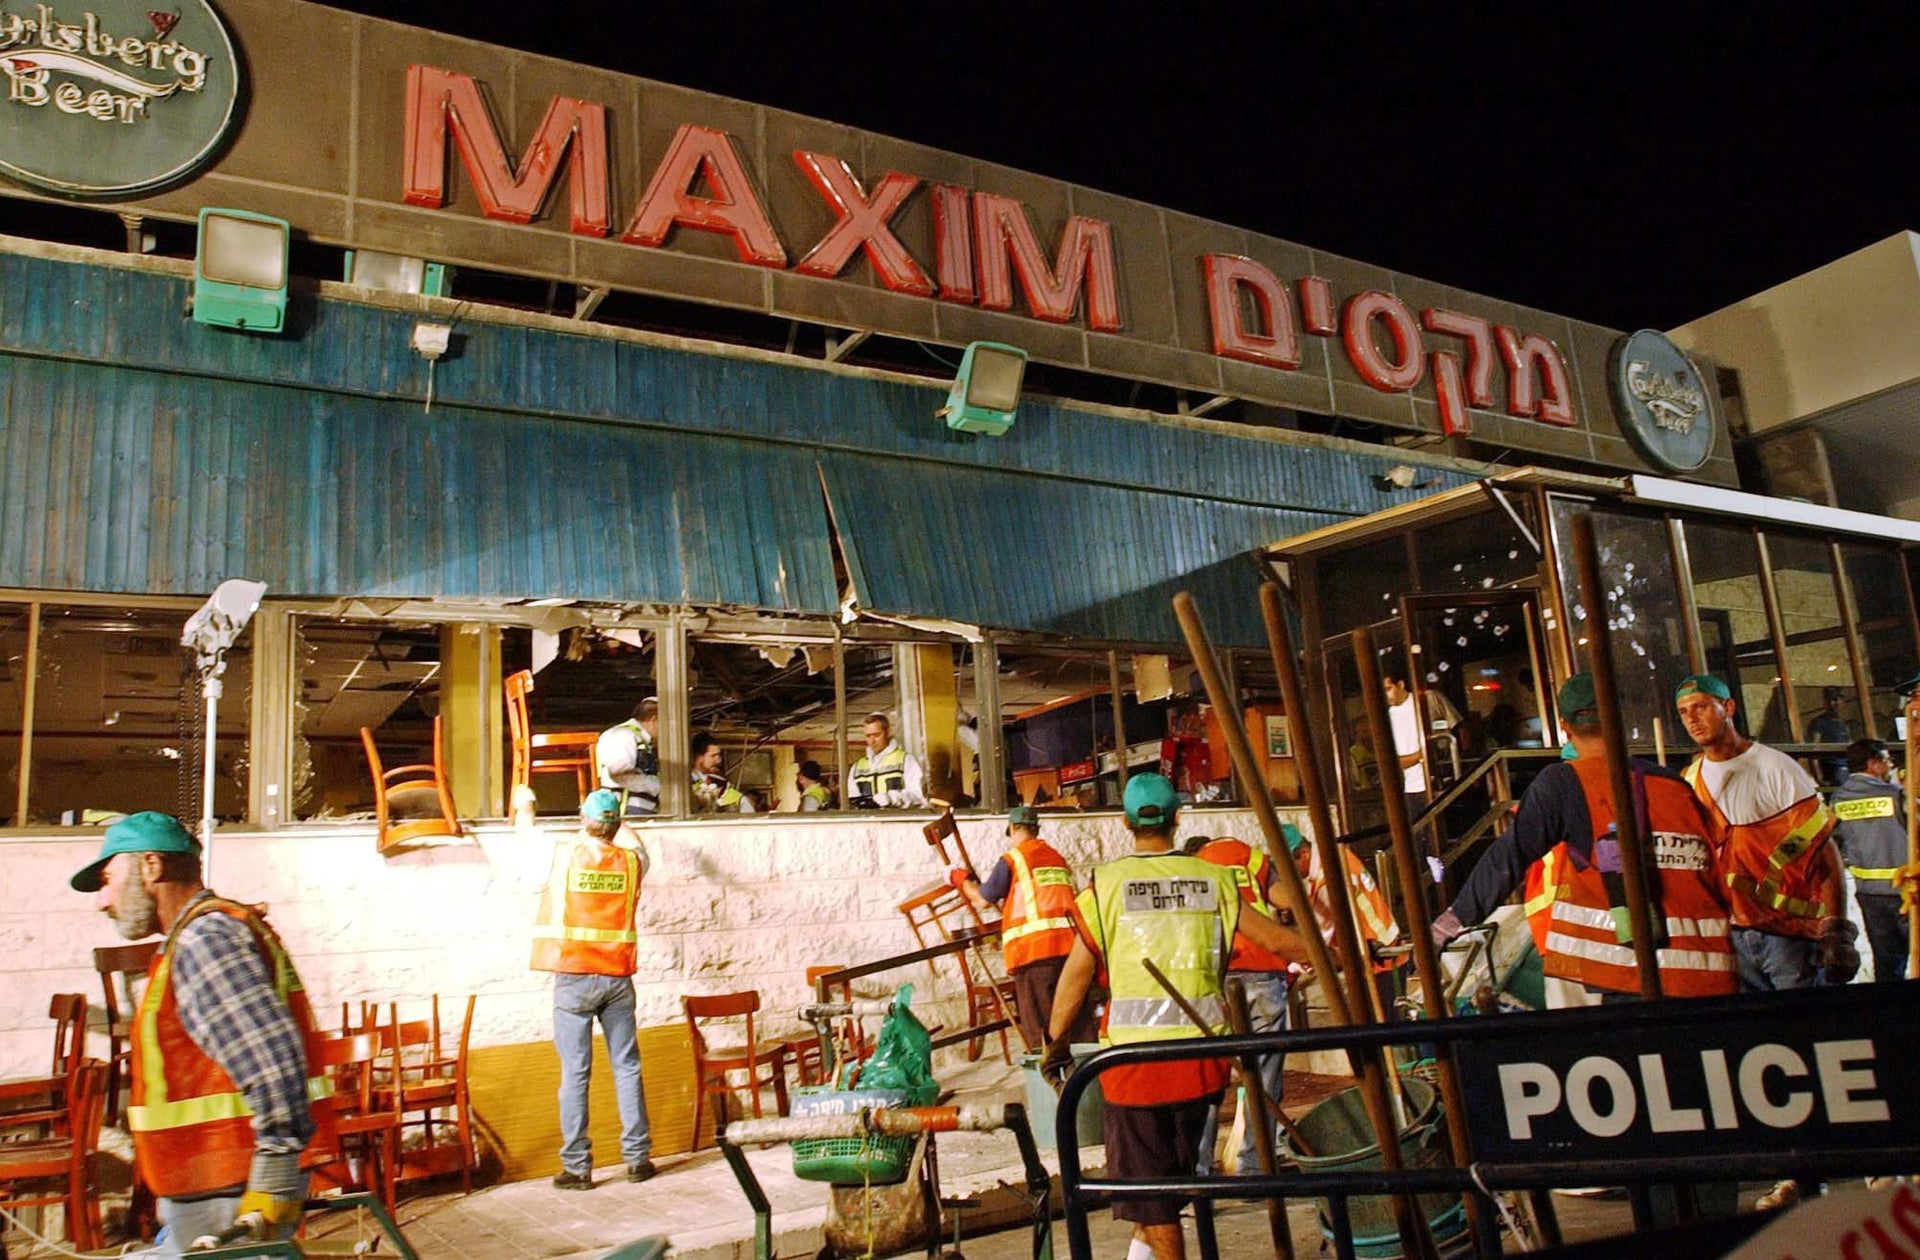 The Maxim restaurant in Haifa after the suicide bombing of October 4, 2003.